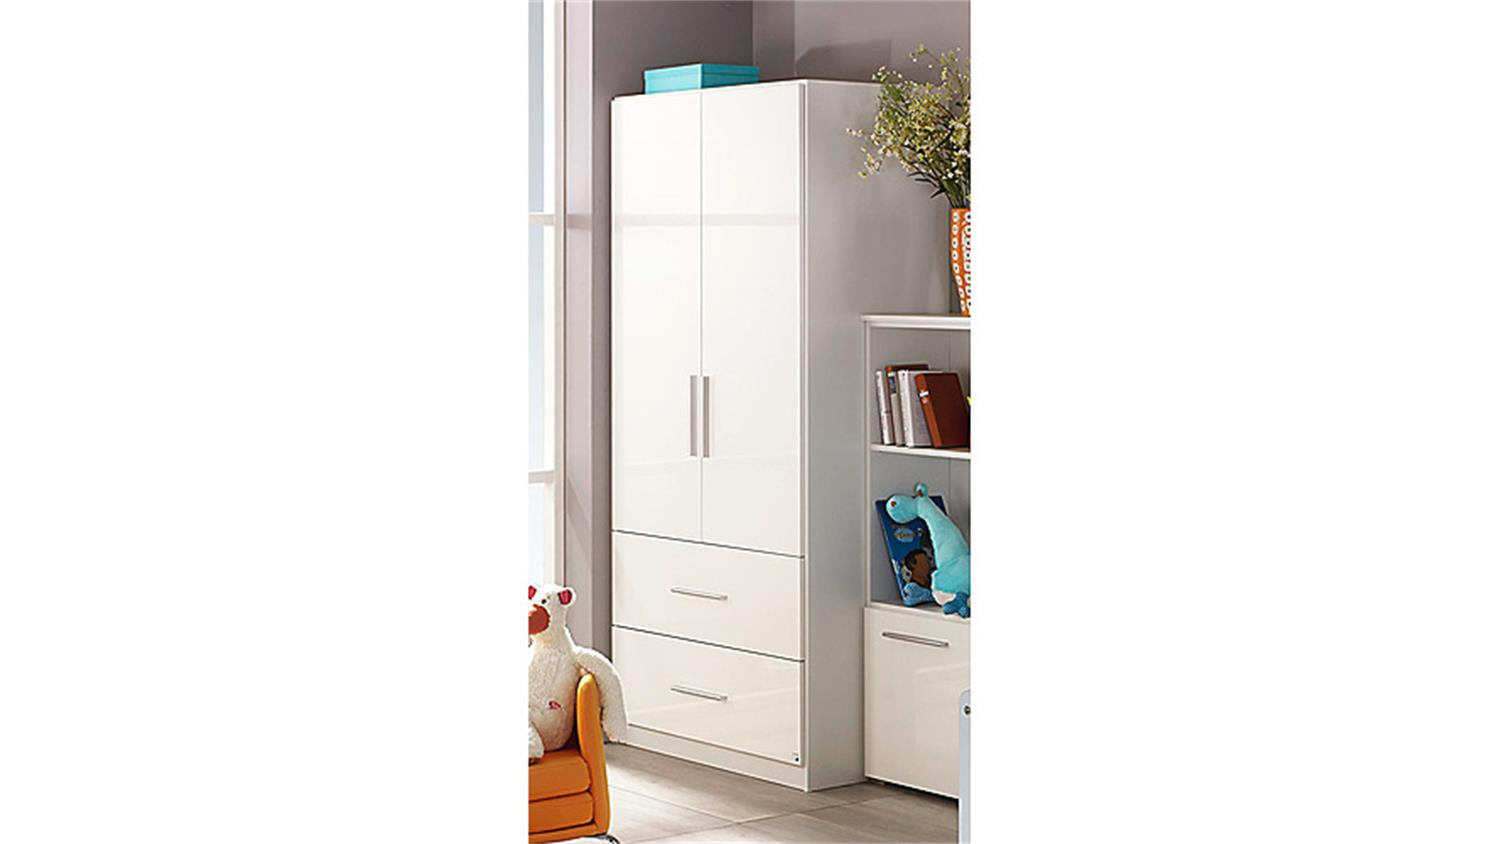 kleiderschrank manja wei hochglanz 2 t ren breite 91 cm. Black Bedroom Furniture Sets. Home Design Ideas